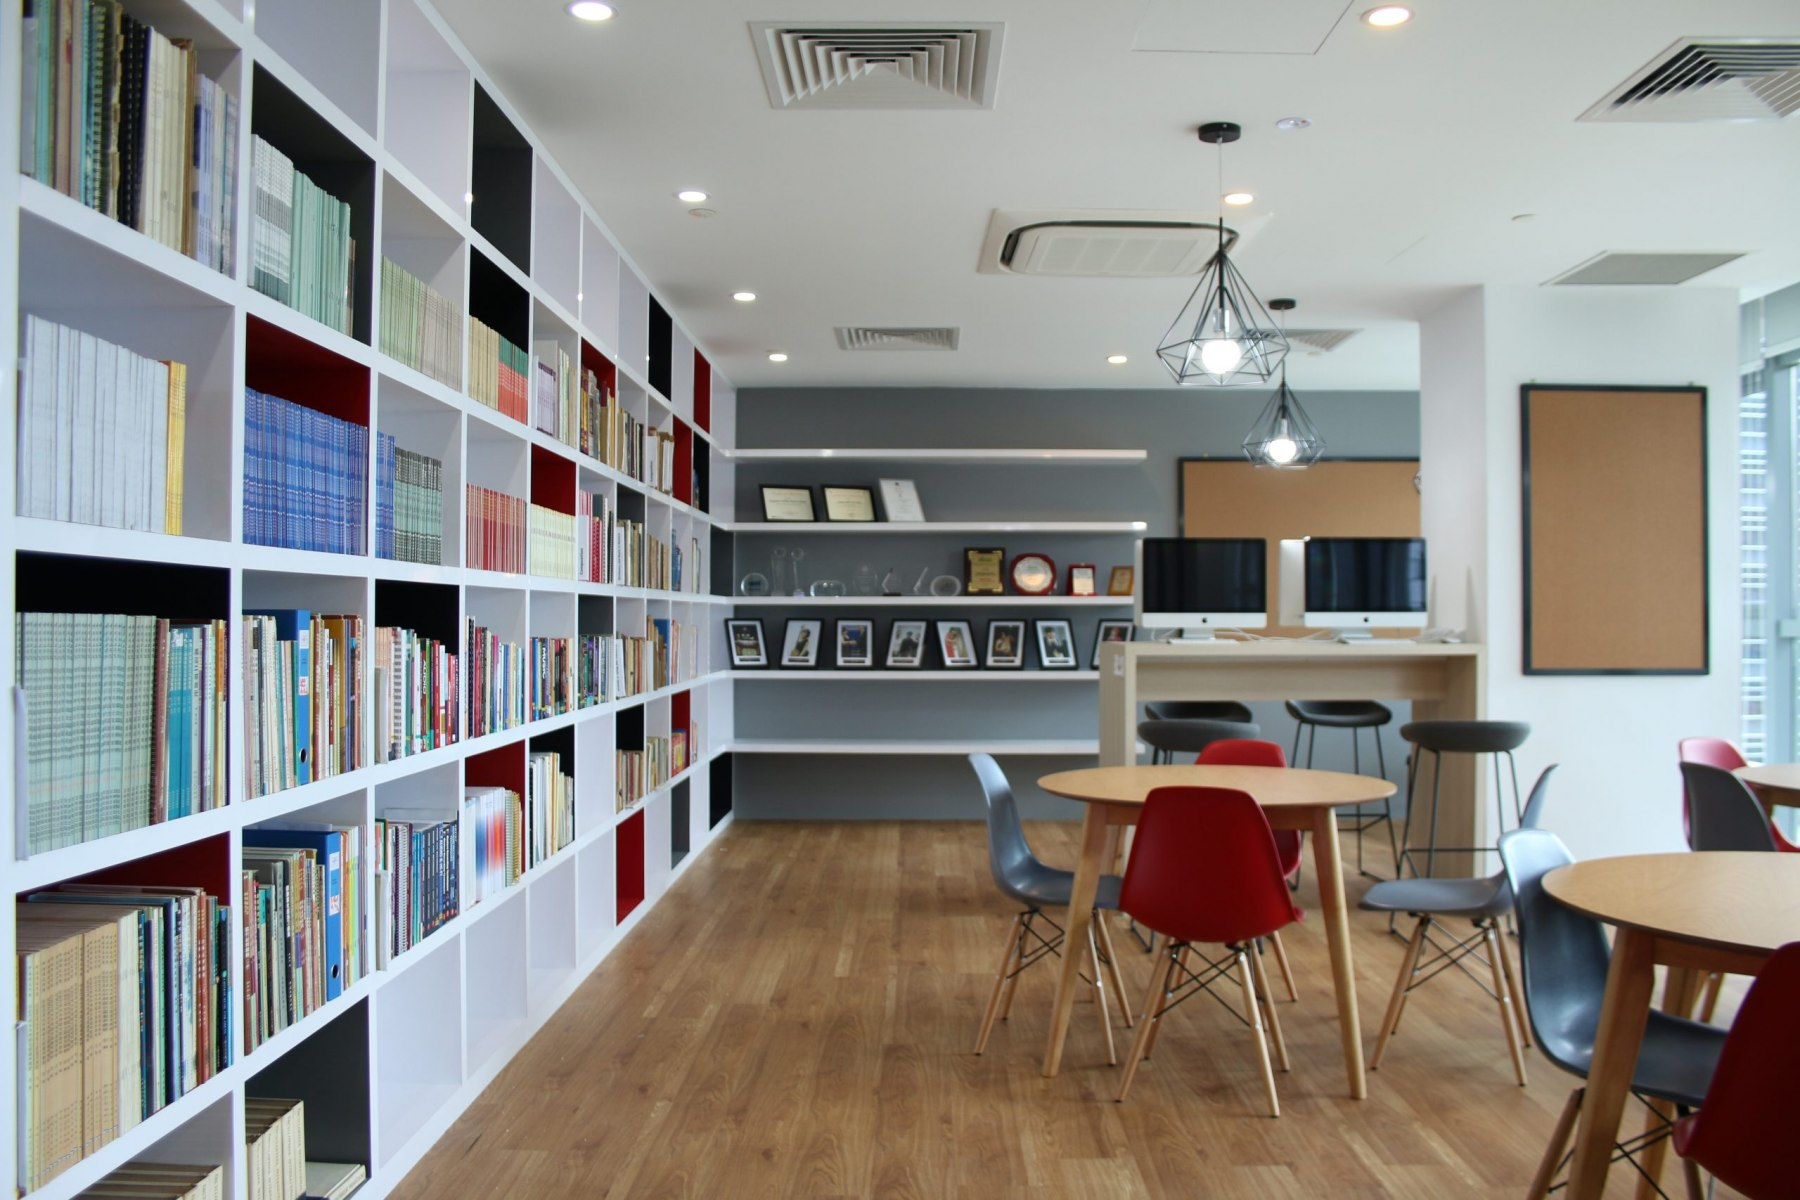 Library-1-scaled